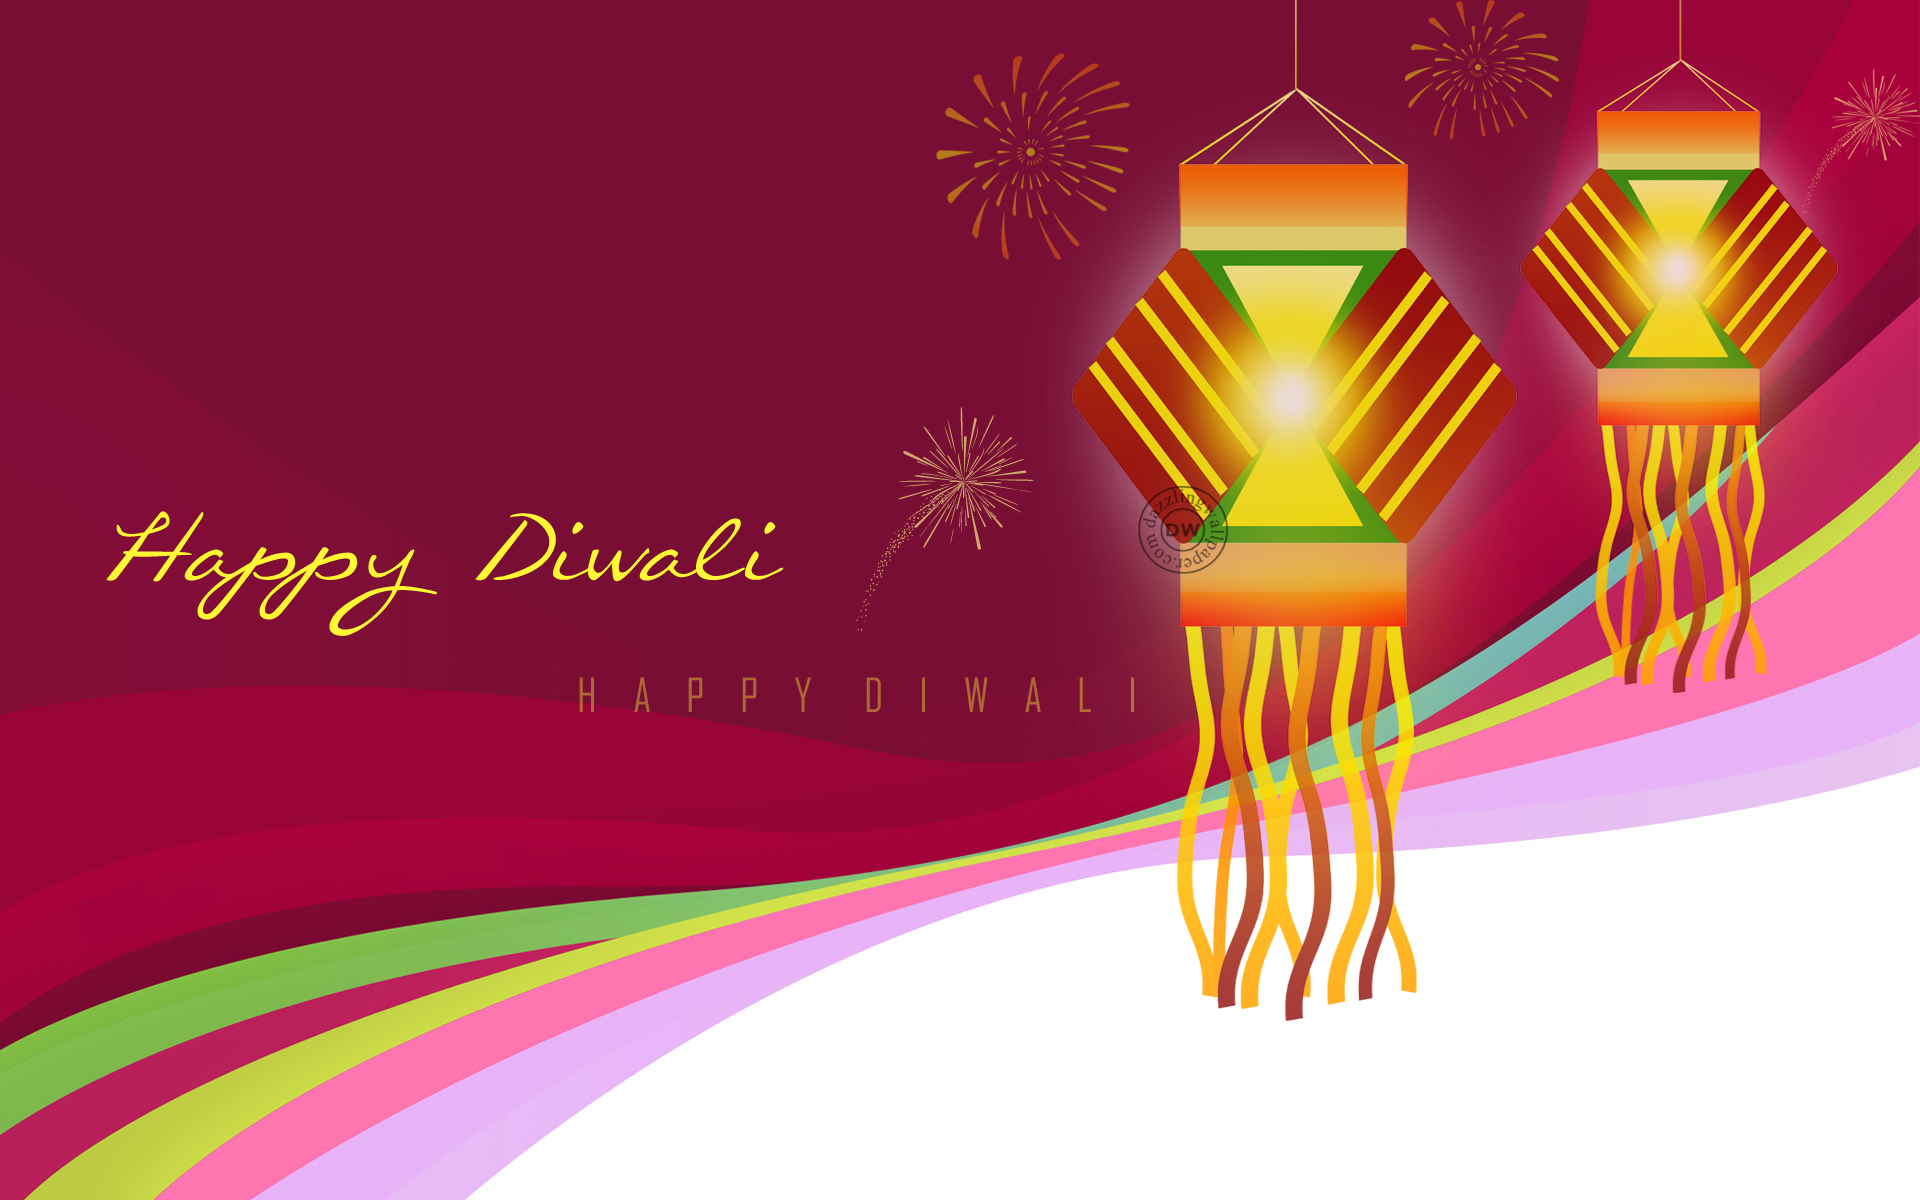 Diwali Wallpapers, Pictures, Images